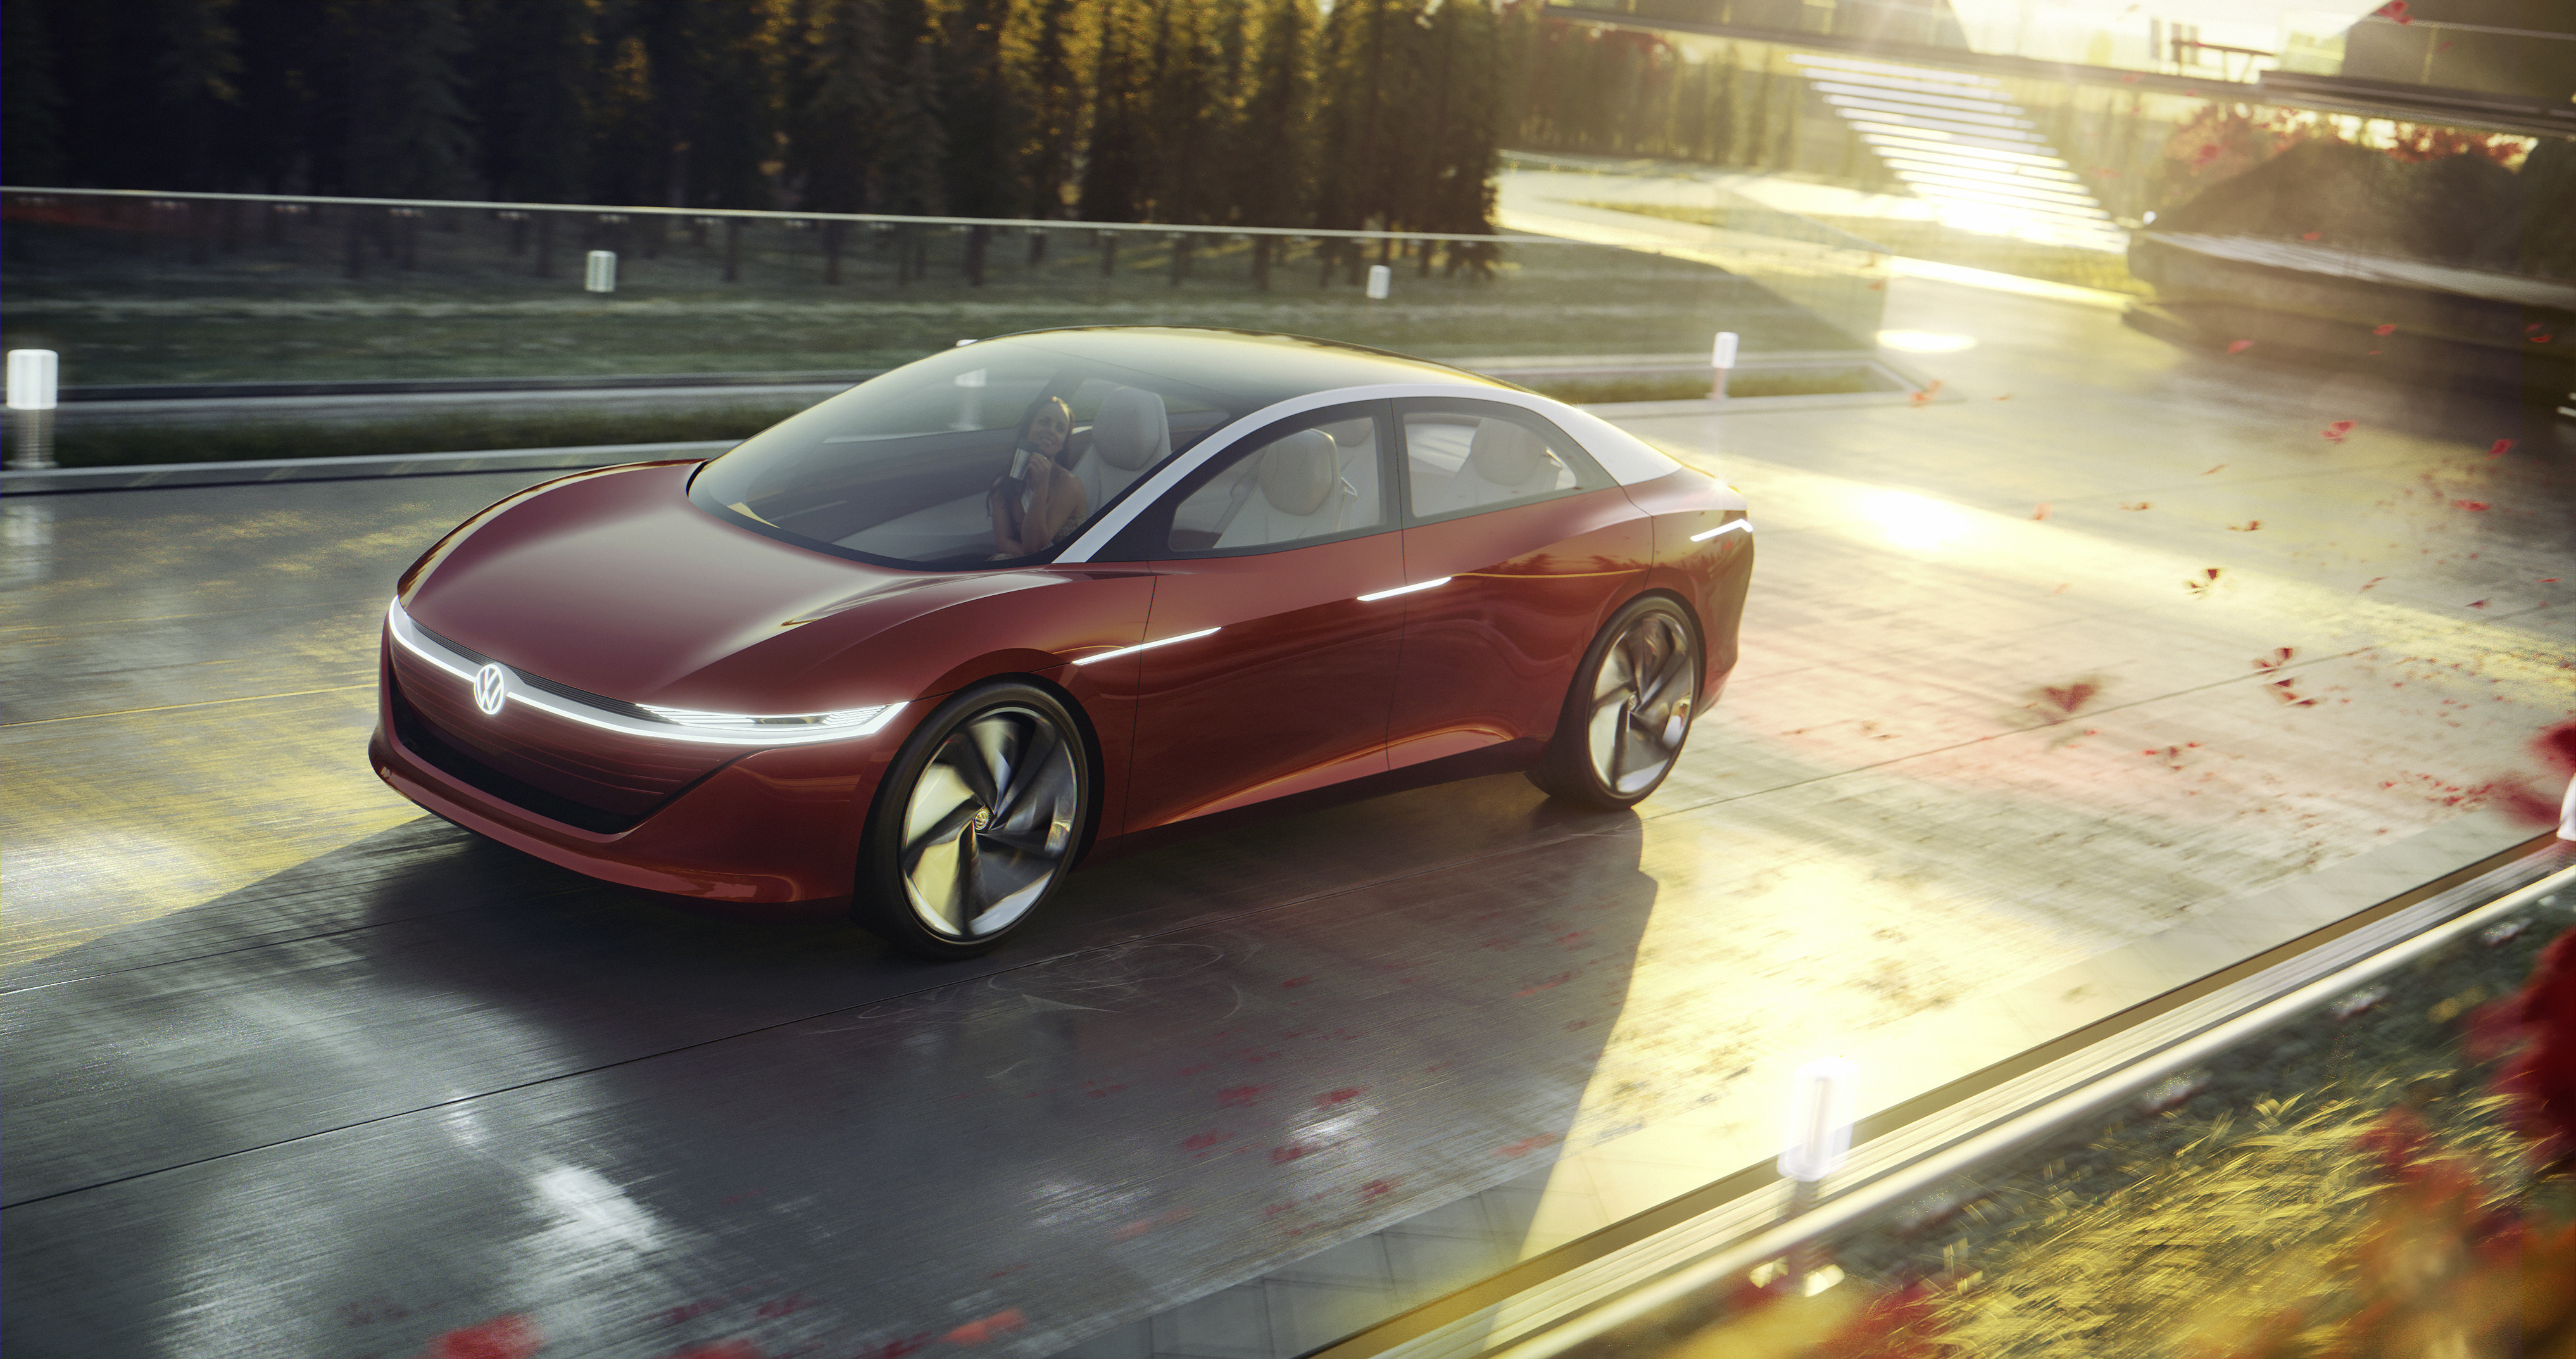 VW unveils new ID electric sedan: 111 kWh battery pack, self-driving on